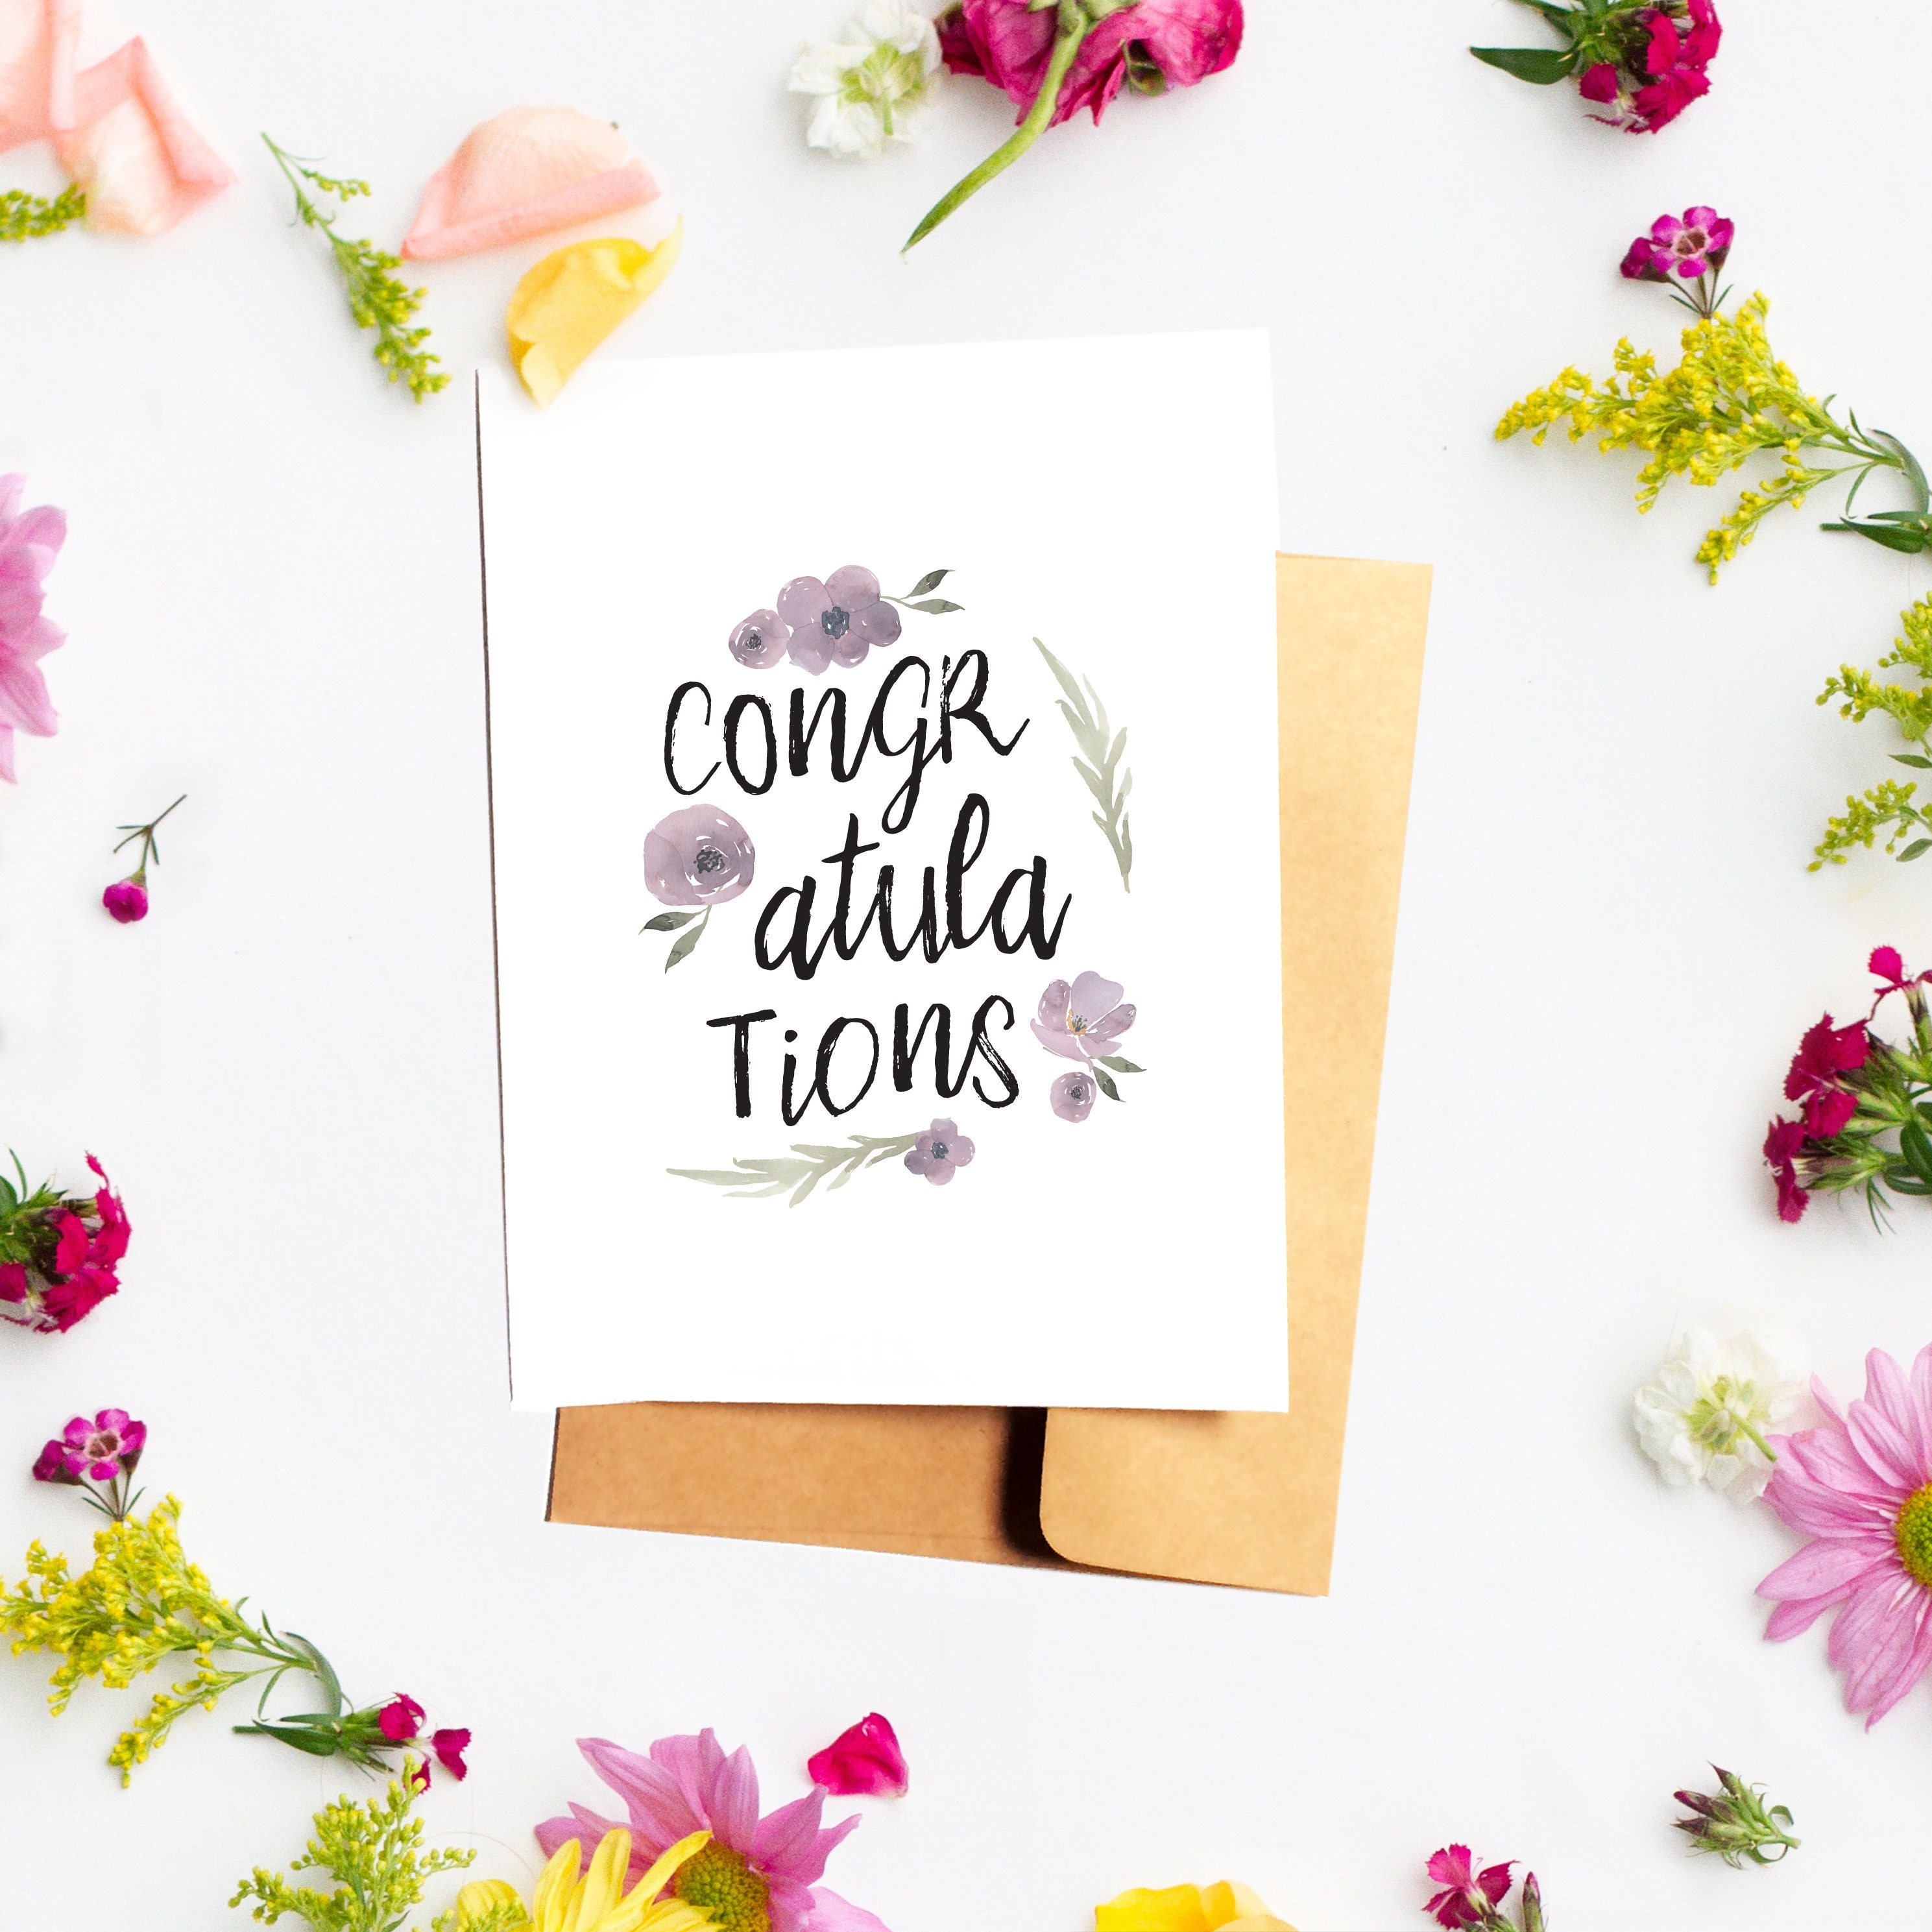 Congratulations card congrats greeting for her baby shower congratulations card congrats greeting for her baby shower wedding marriage new homeowners job graduation engagement kristyandbryce Image collections